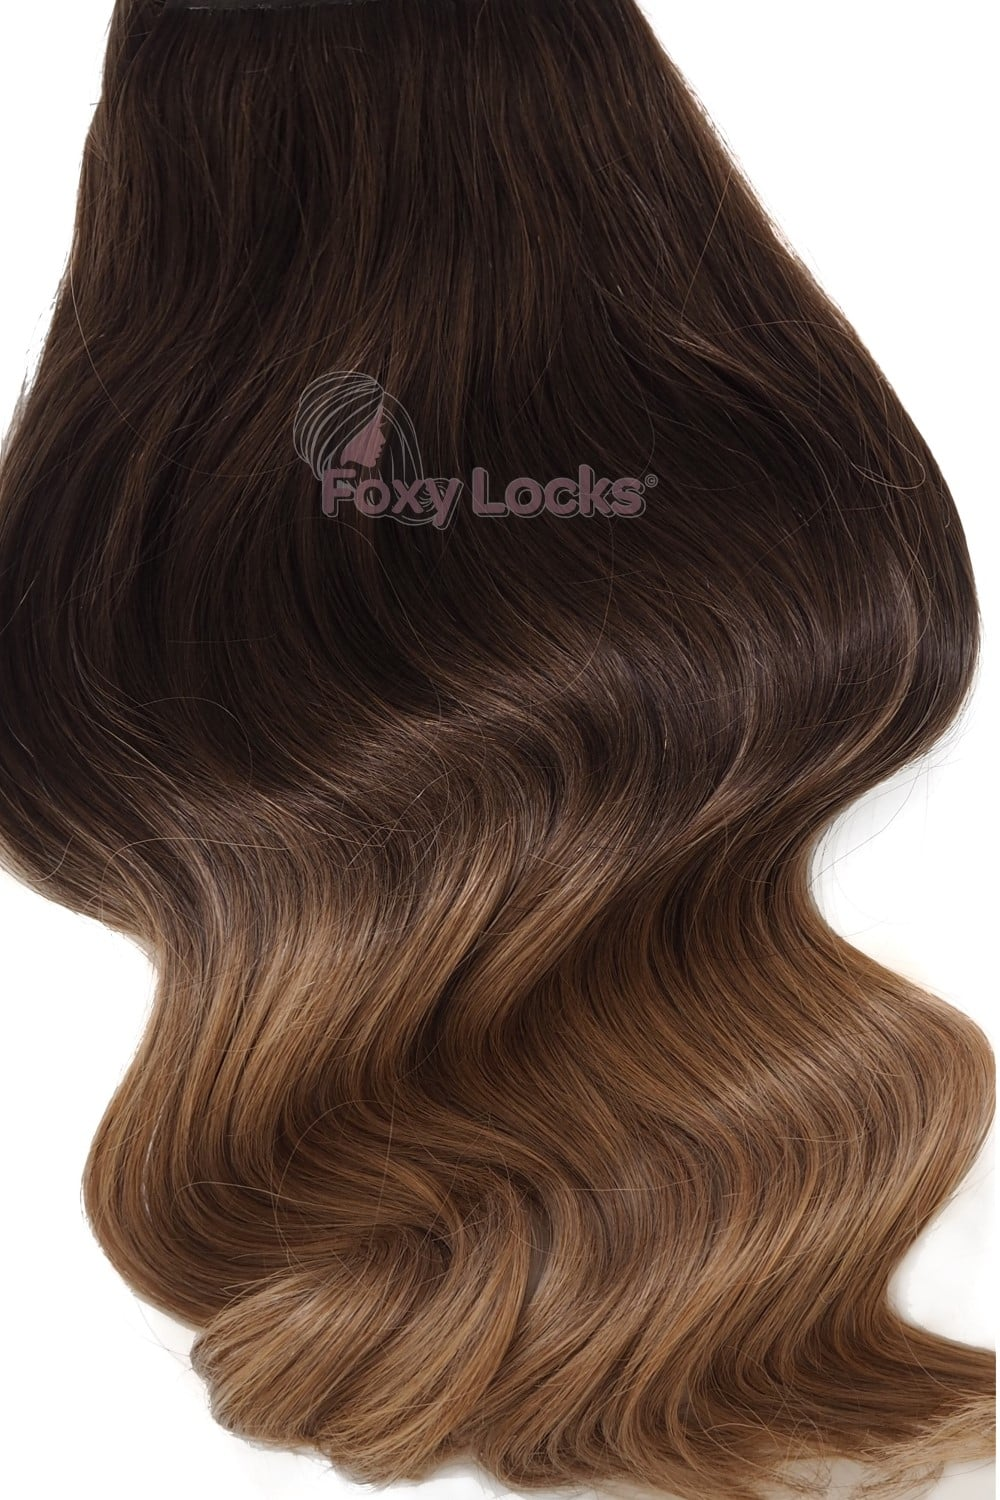 Mocha Toffee Ombre Luxurious 24 Clip In Human Hair Extensions 280g